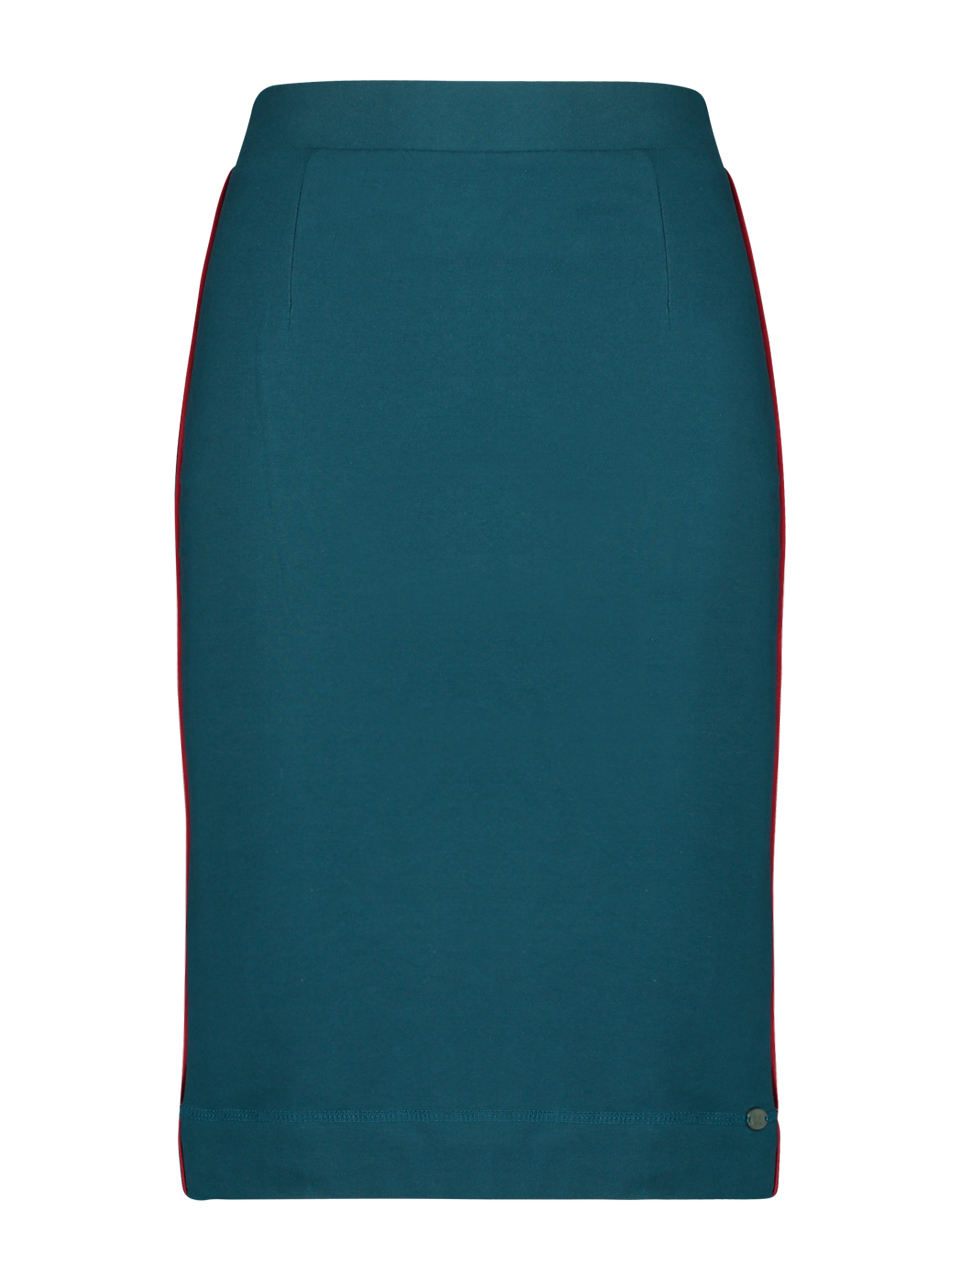 Skirt french knit - Blue ( petrol)